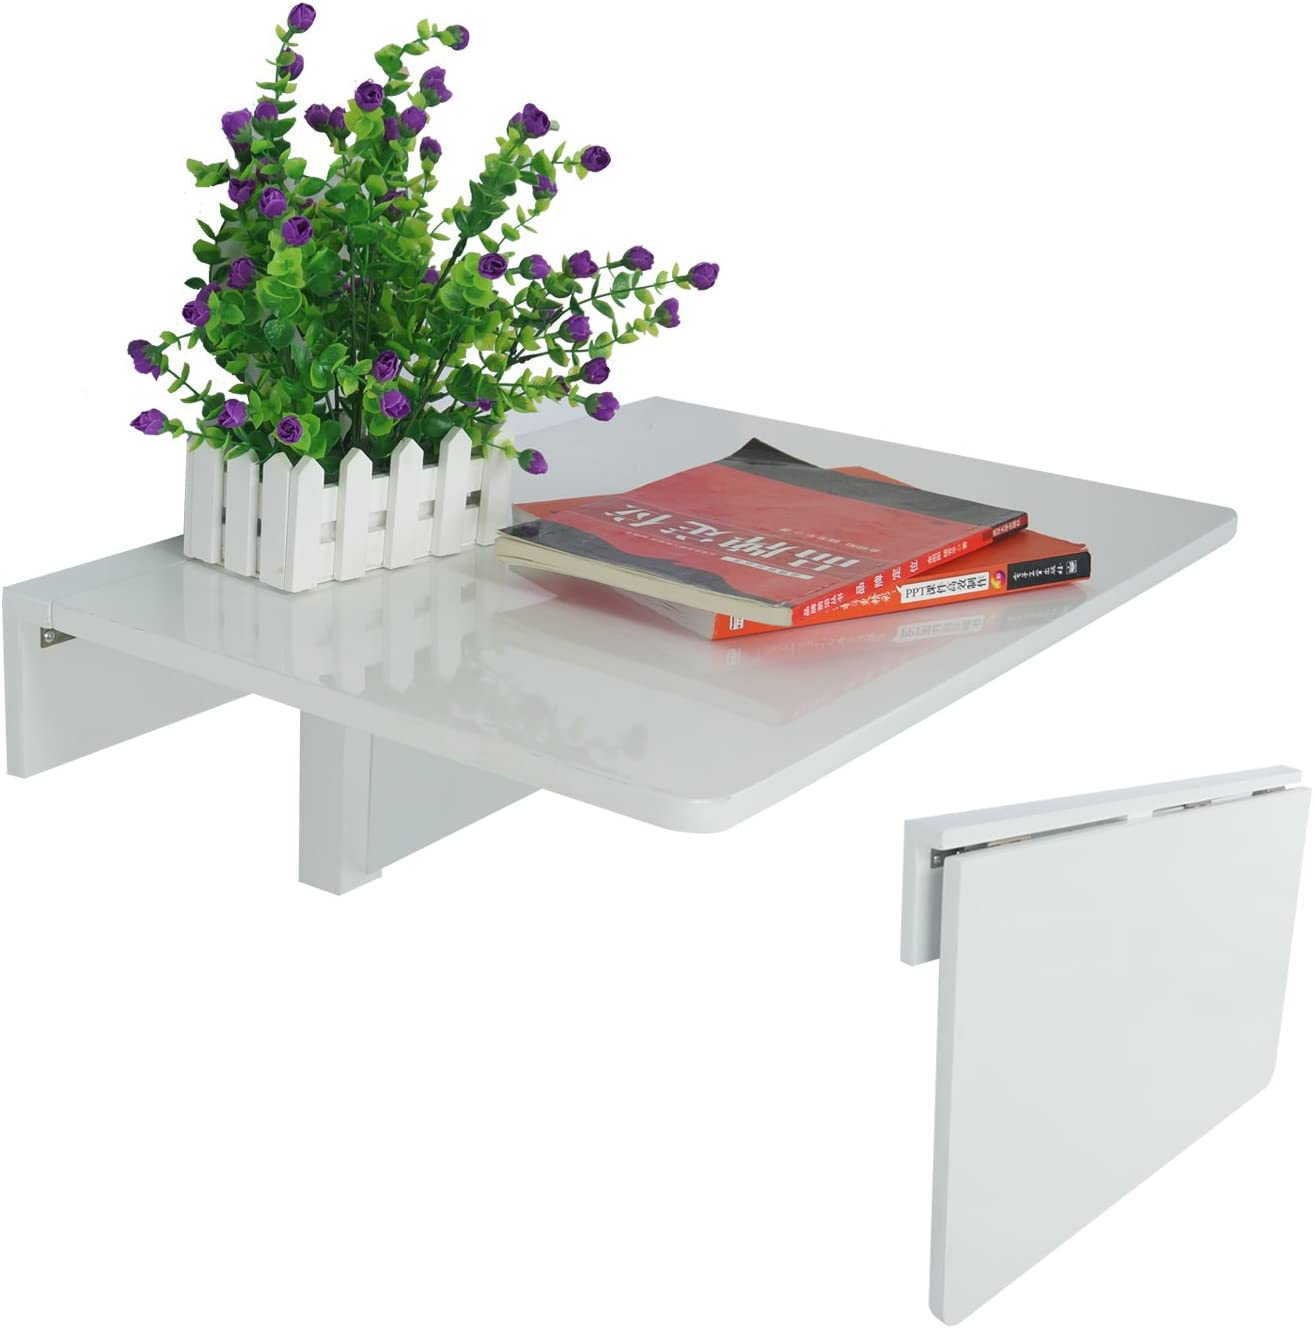 LiRen-Shop Wall-Mounted Folding Table Max Max 50% OFF 85% OFF Drop-Leaf Comput Floating